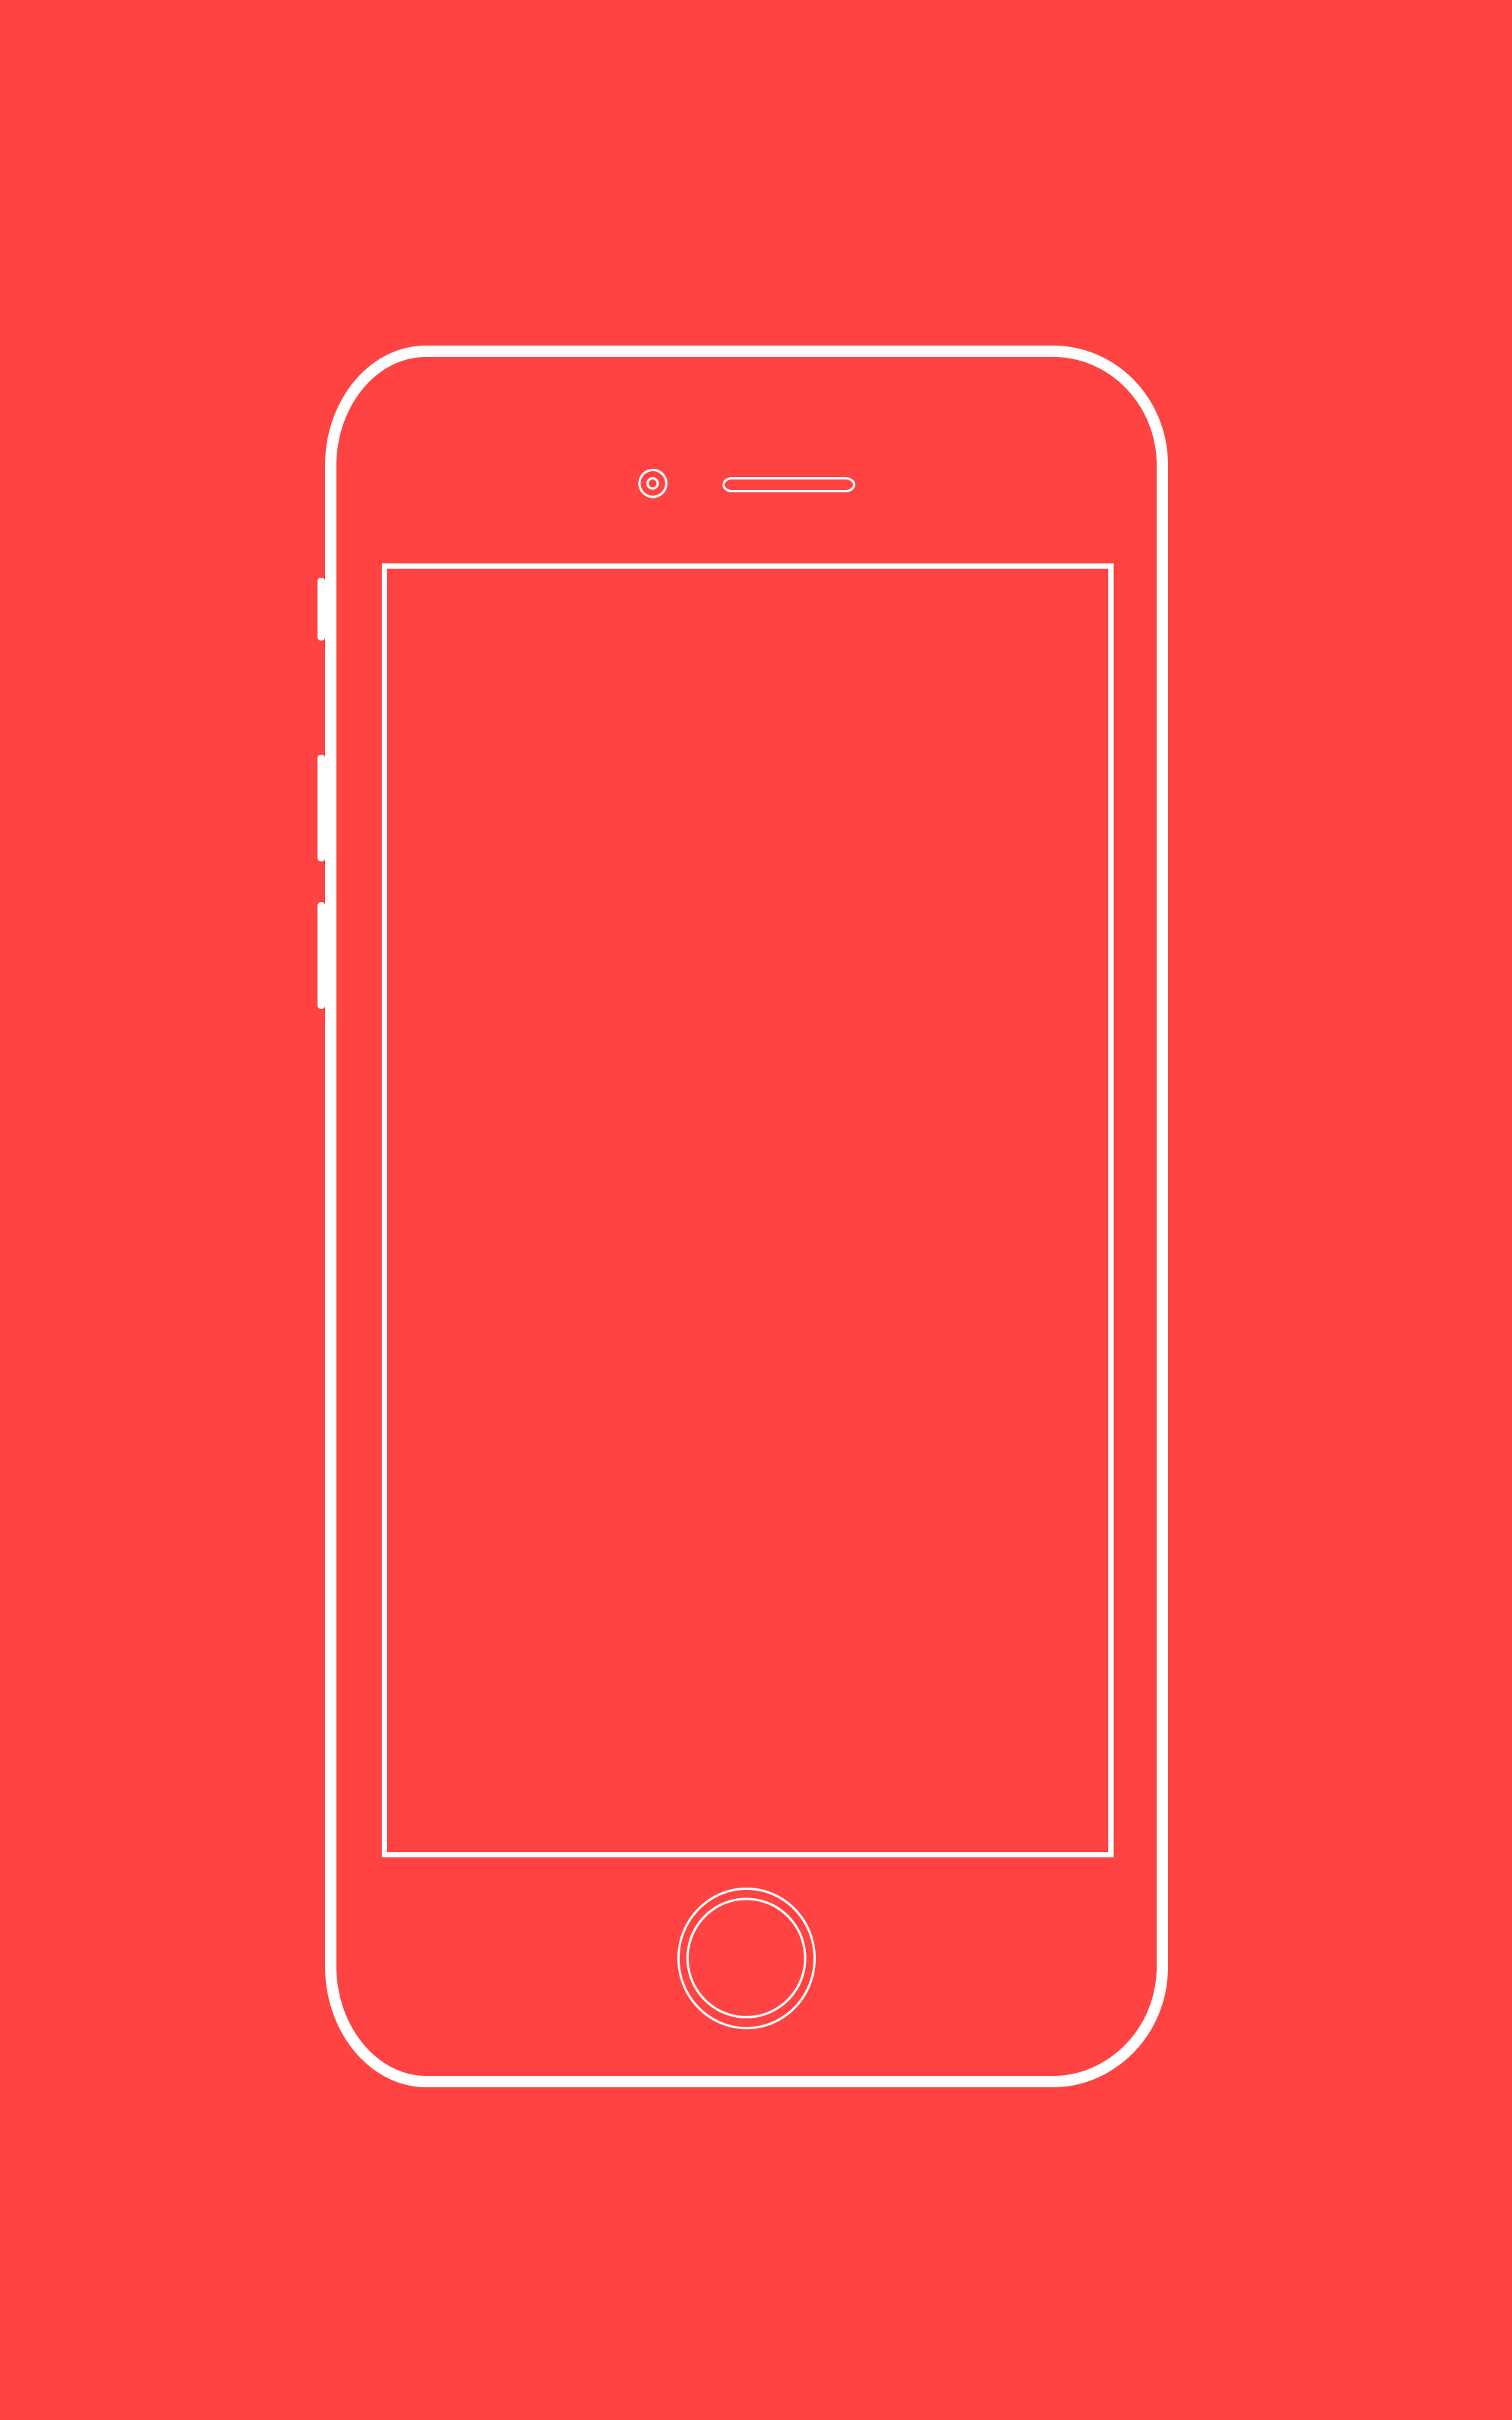 Iphone6 mock up sketch by georgian sorin maxim